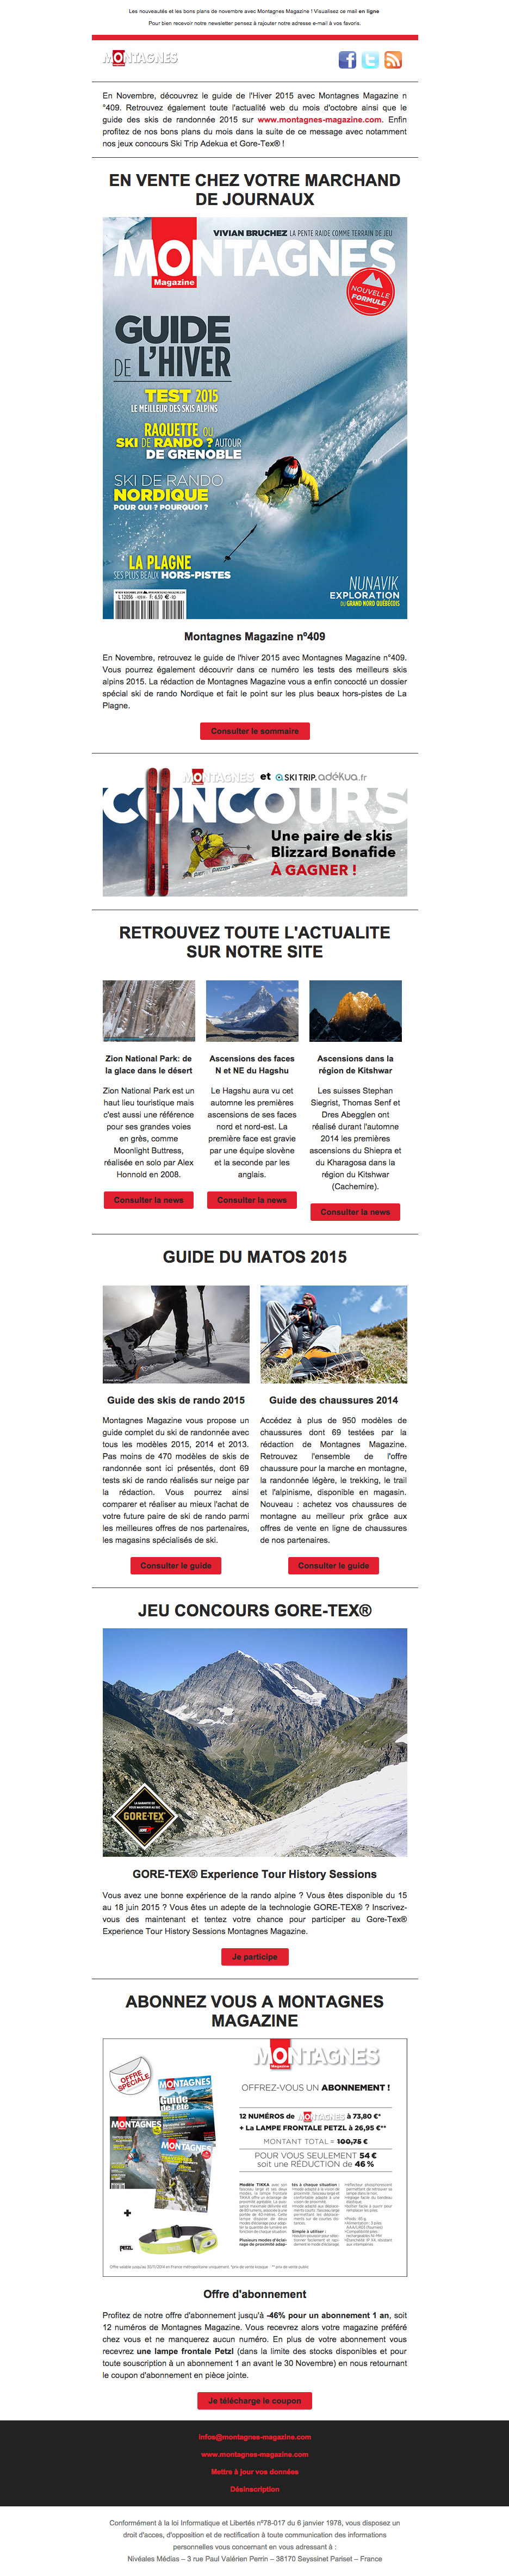 montagnes_newsletter